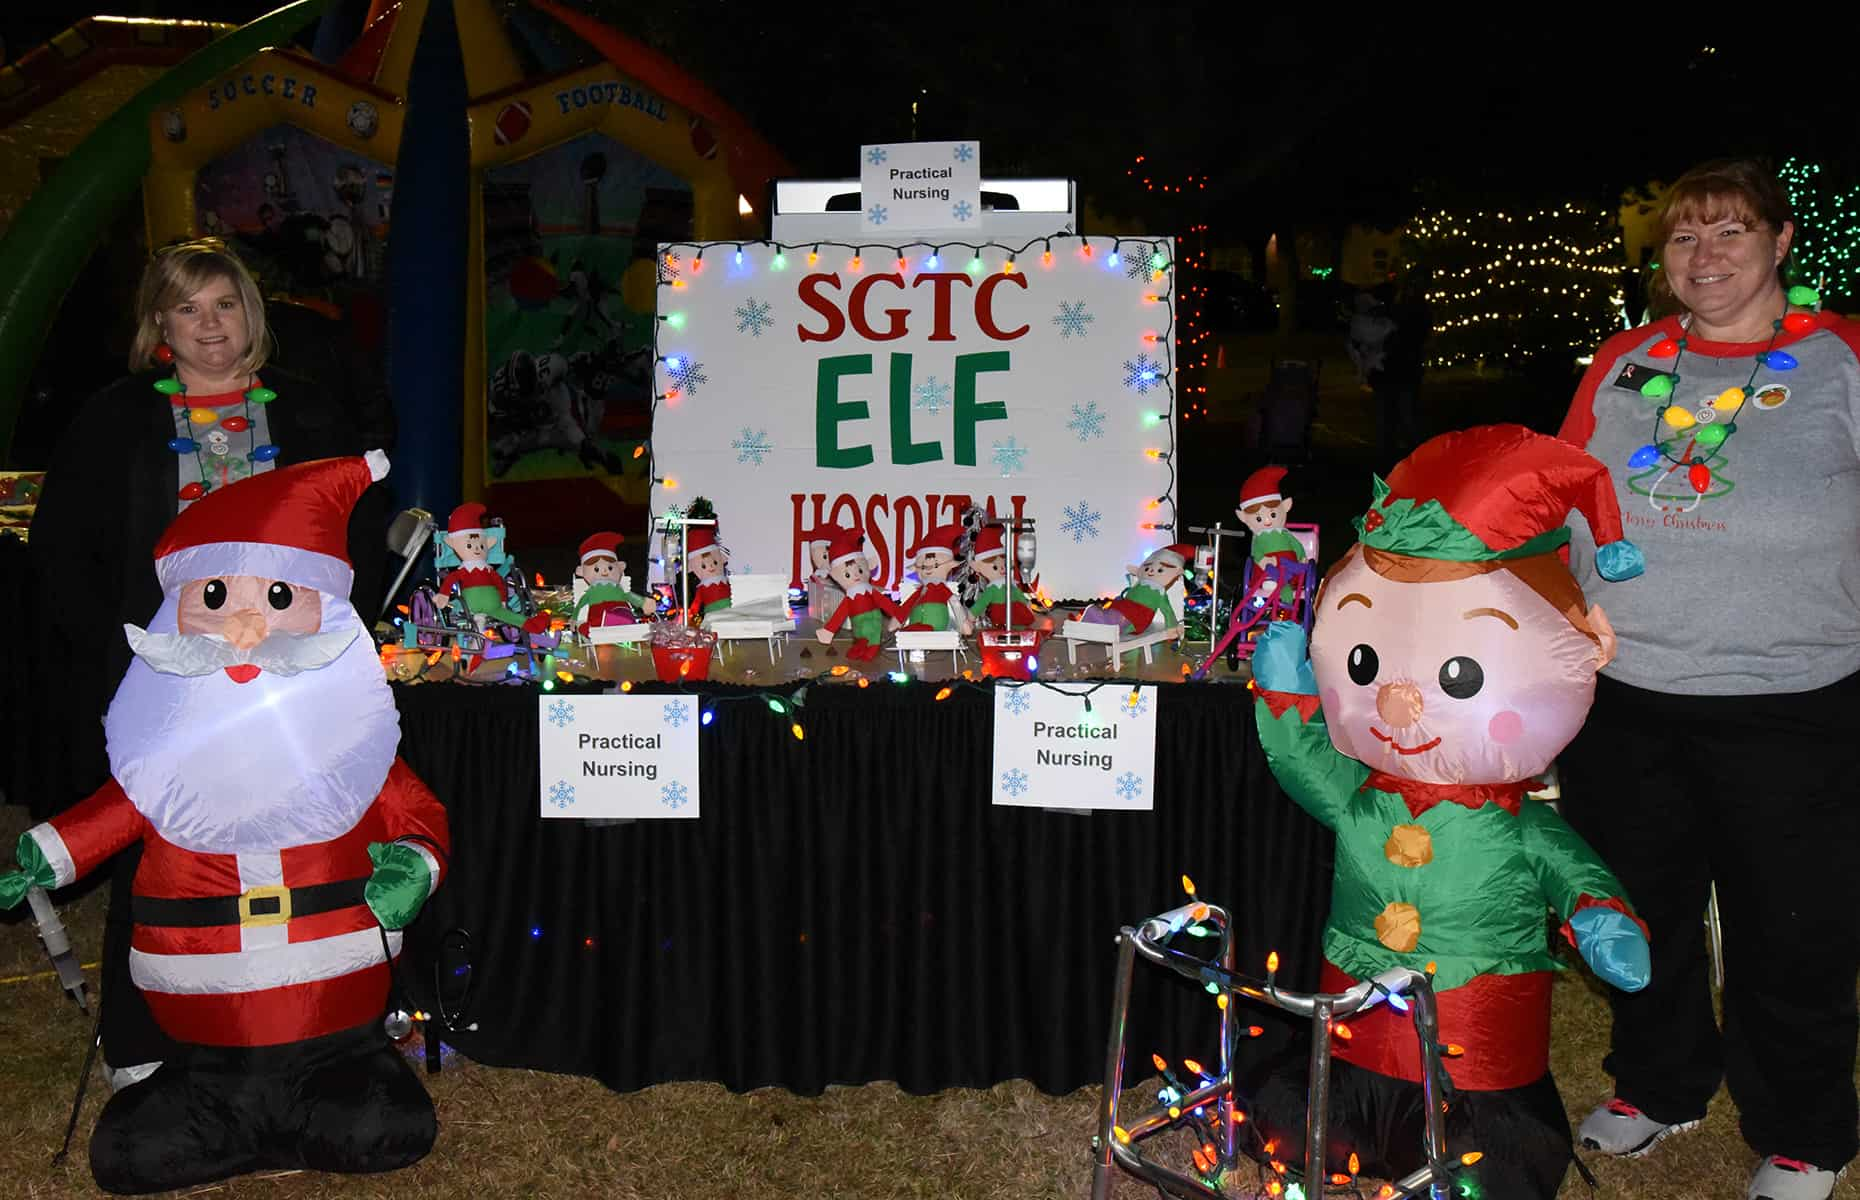 The Elf Hospital was set-up by the SGTC Practical Nursing department.